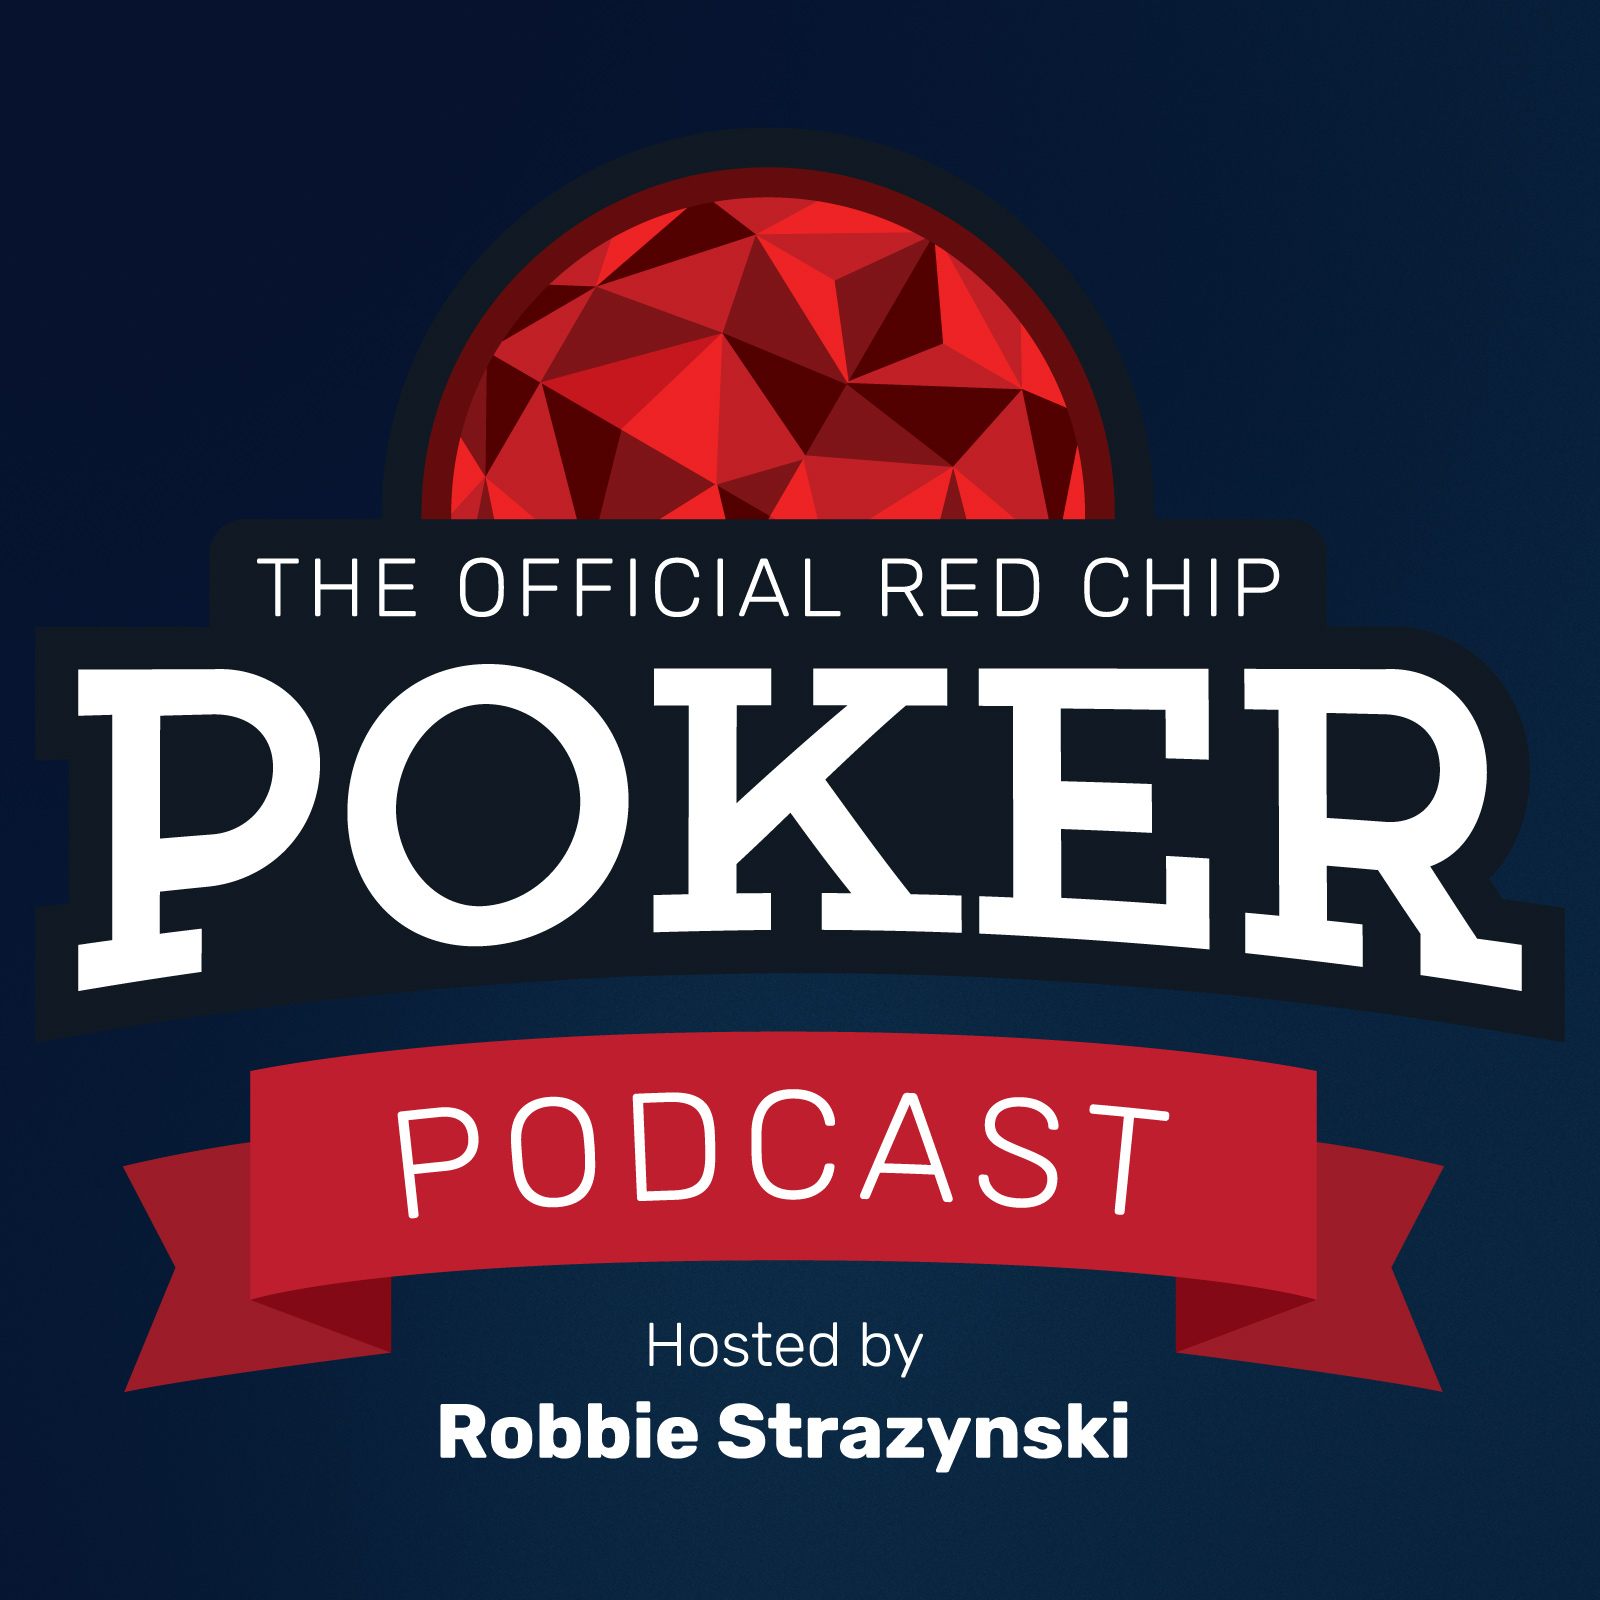 The Official Red Chip Poker Podcast show art